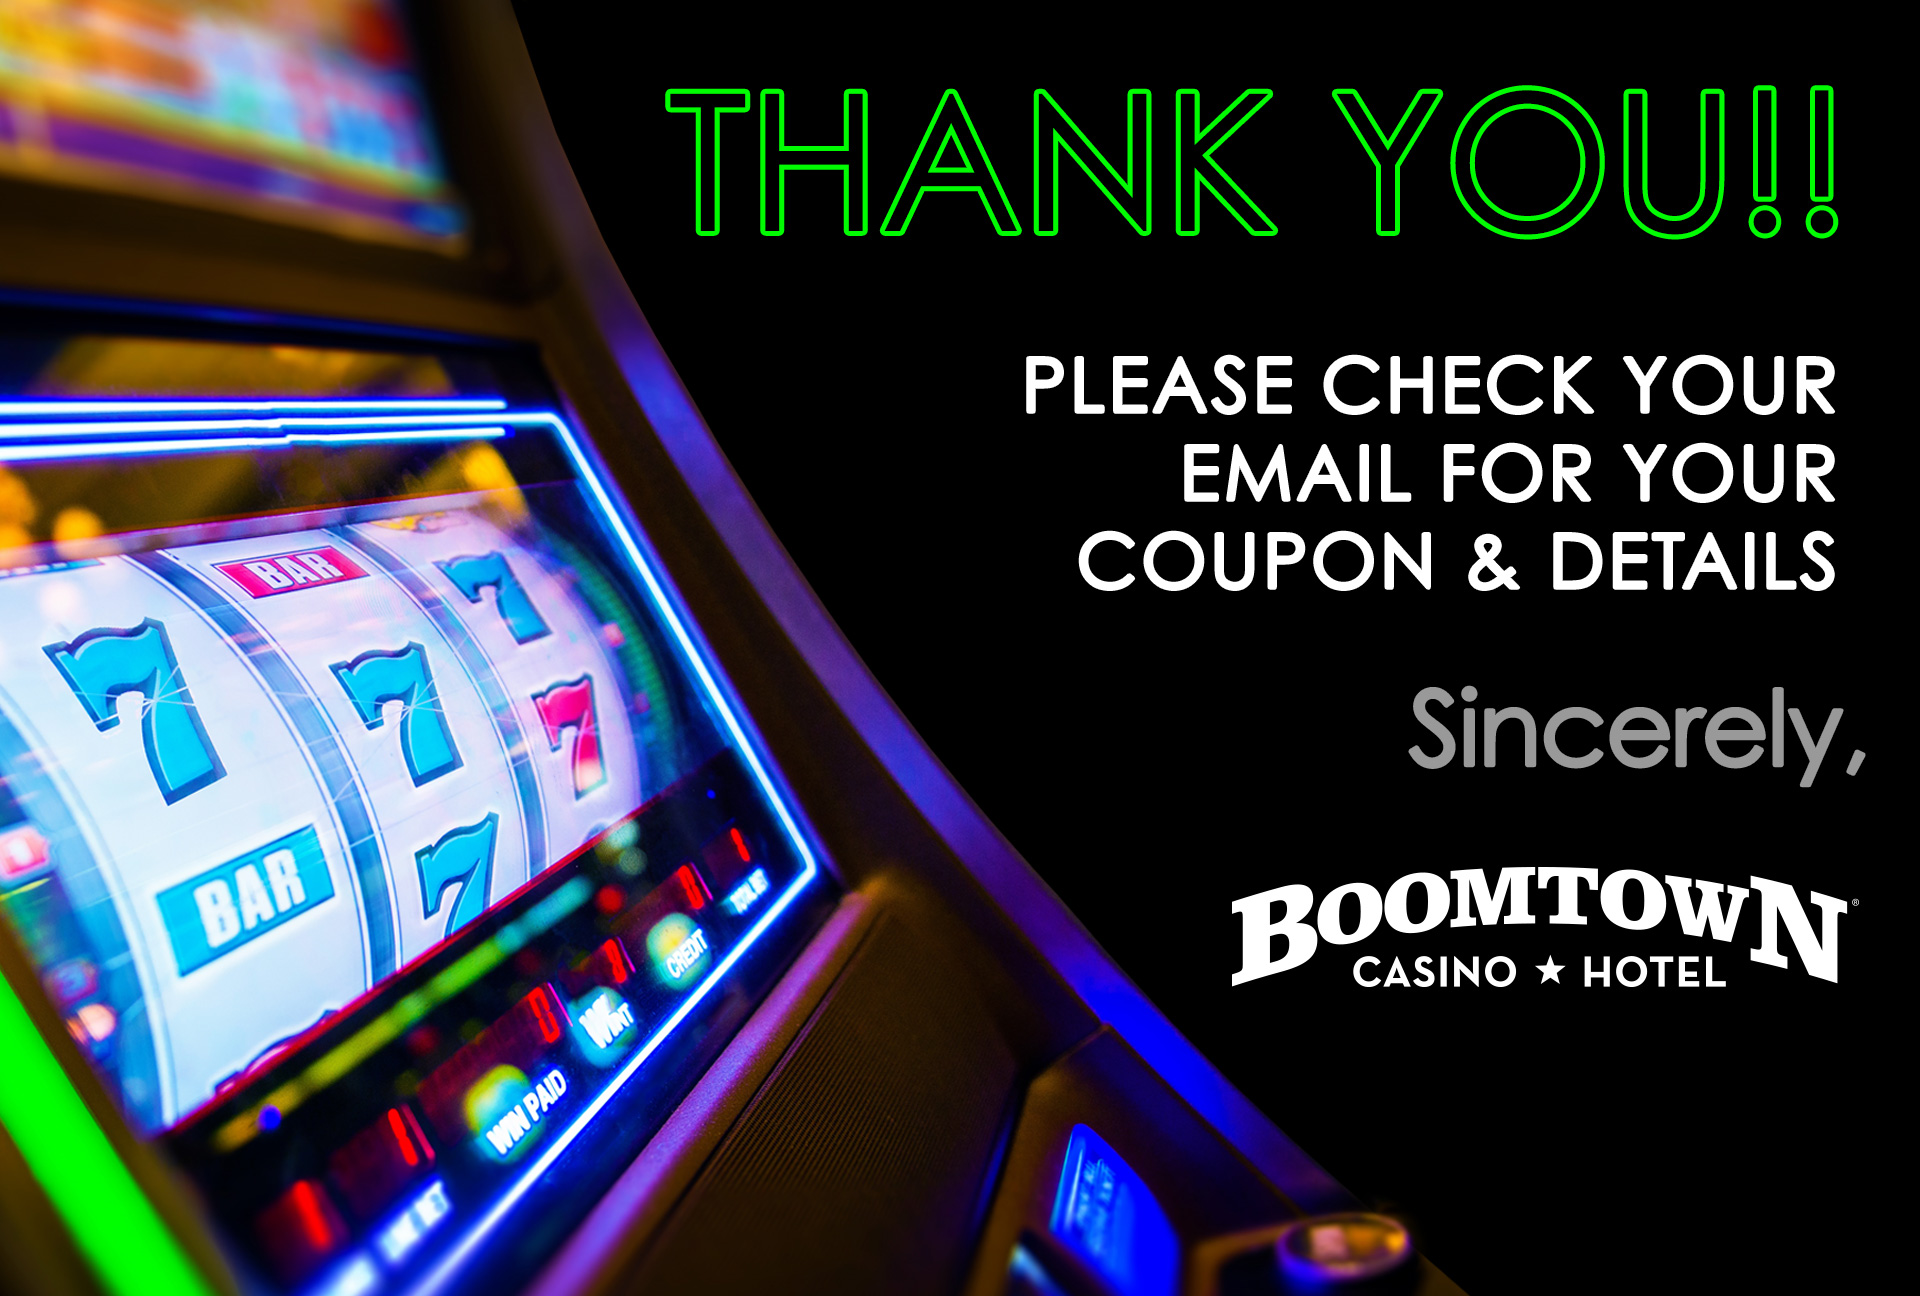 Boomtown-Free-Play-Promo-Offer-Thankyou